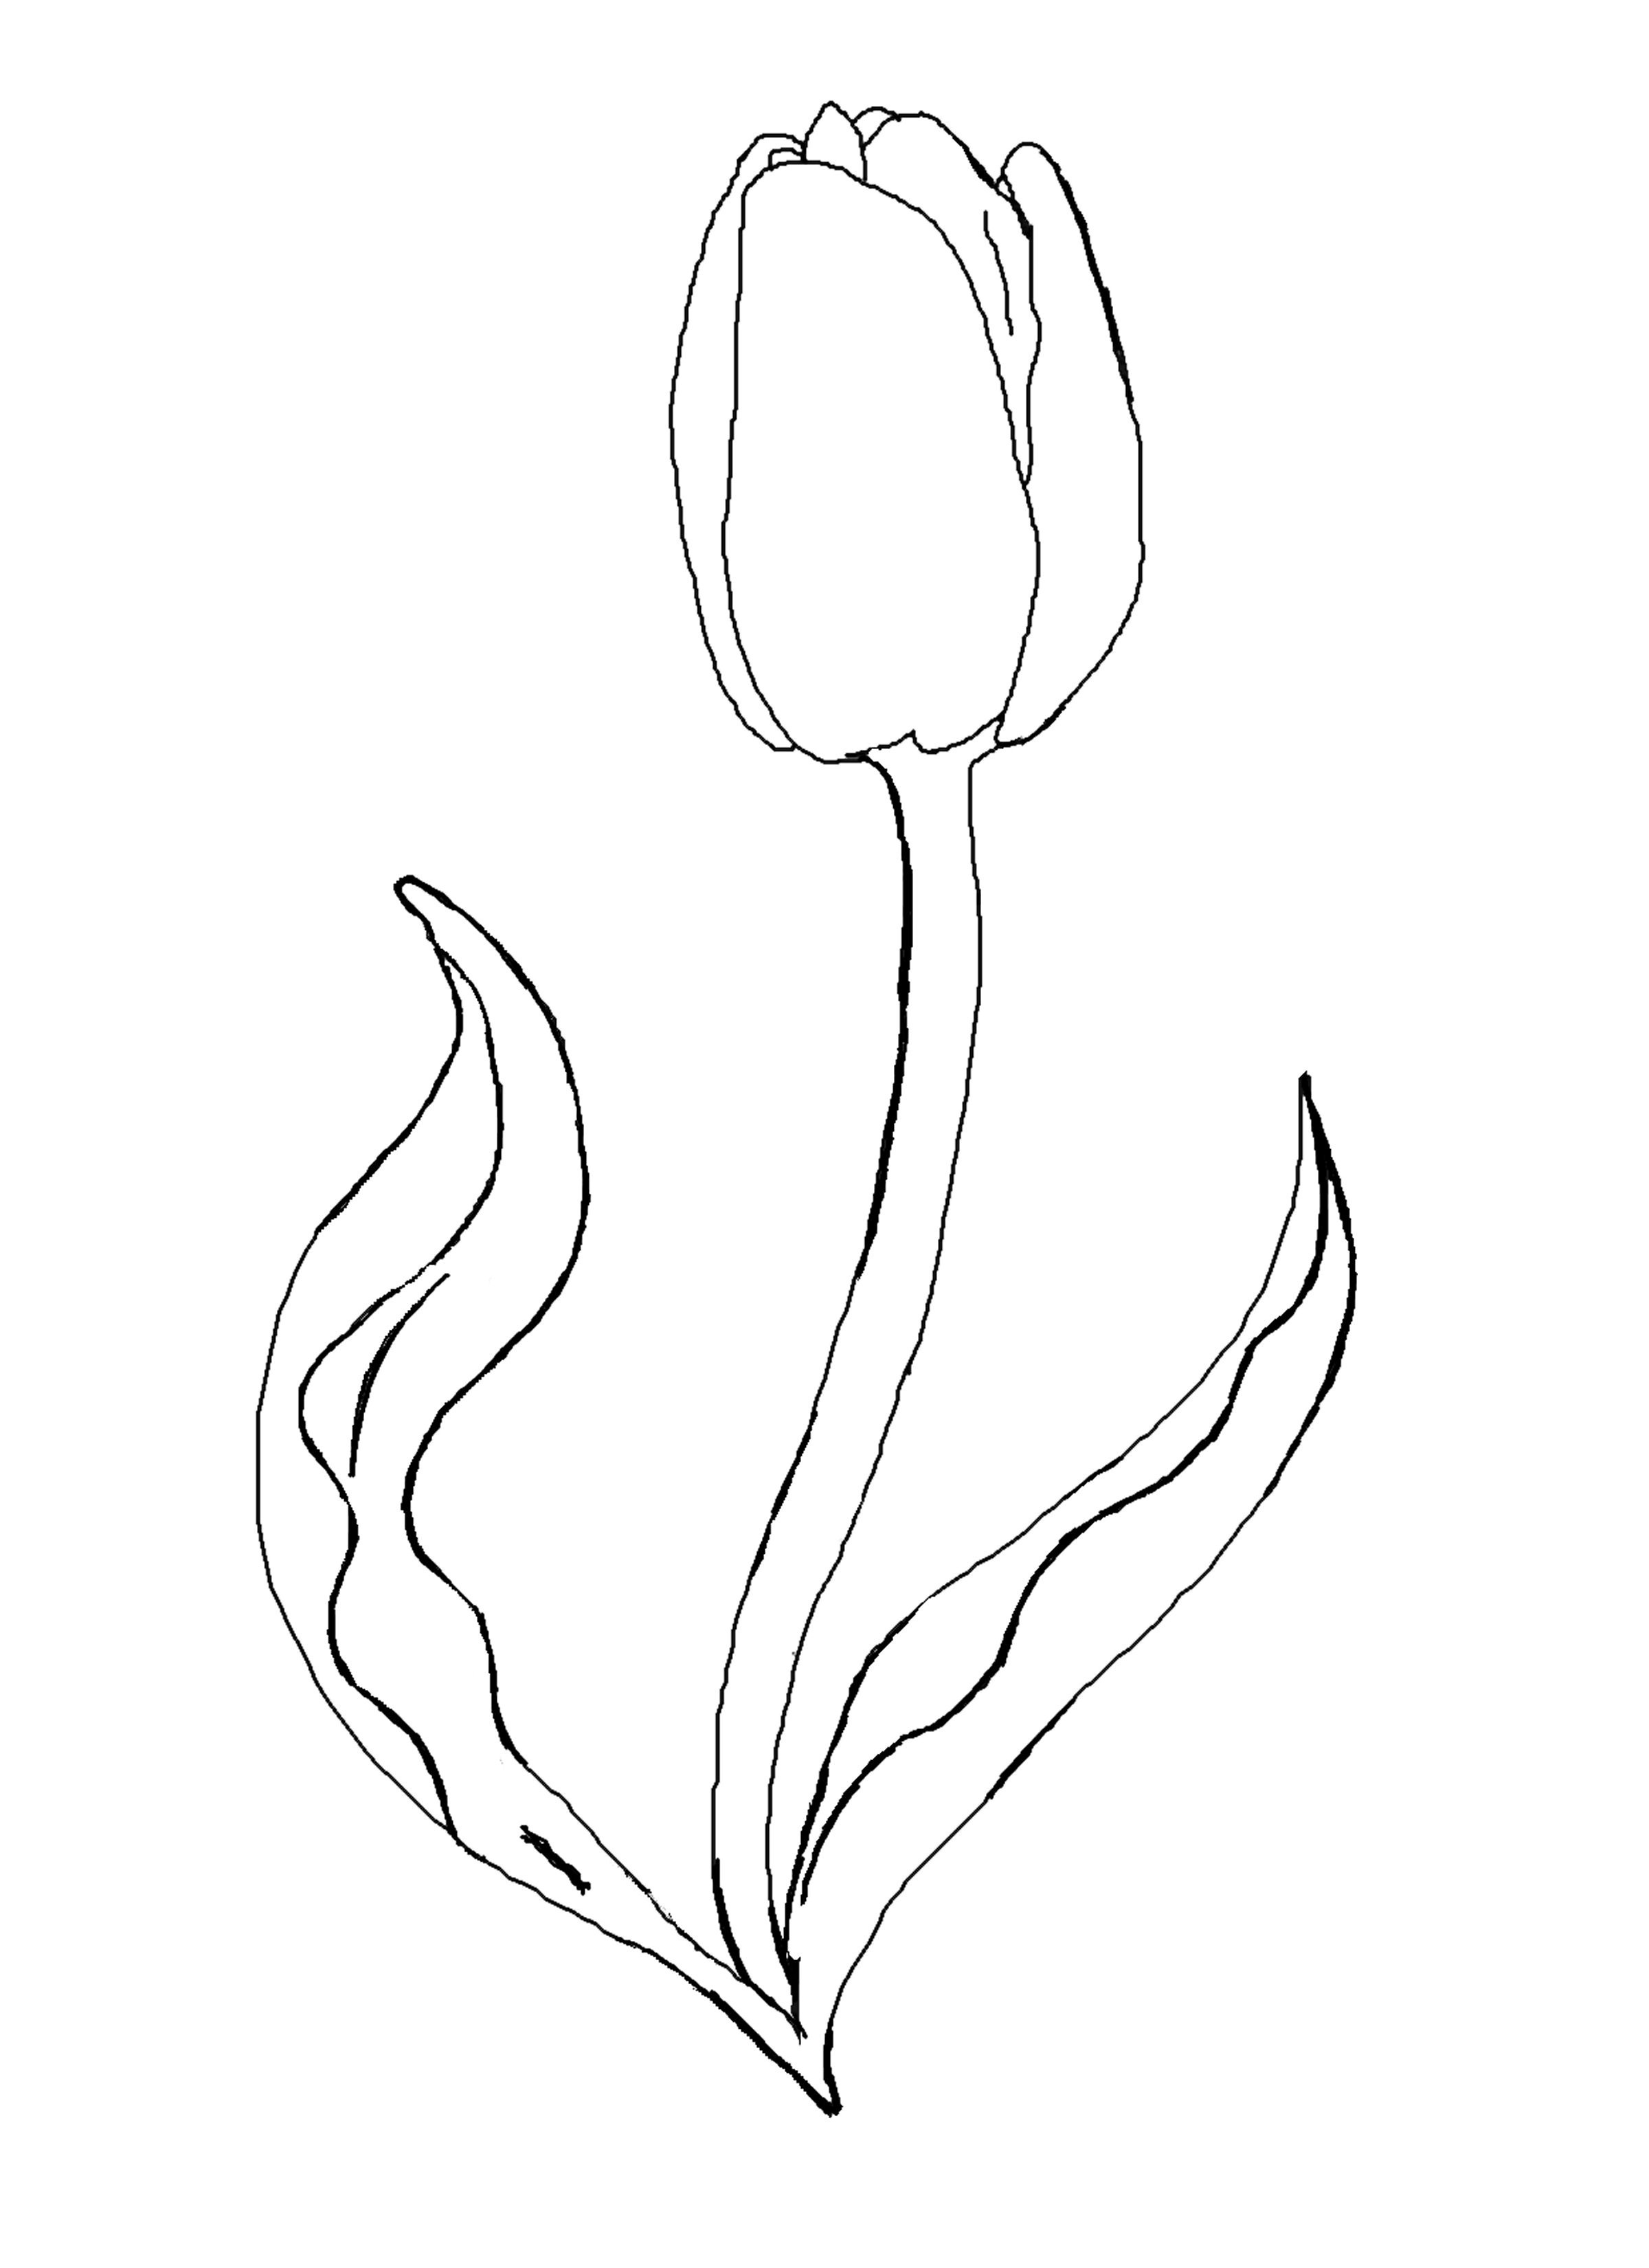 coloring tulip template tulip template printable flower templates printable tulip coloring template